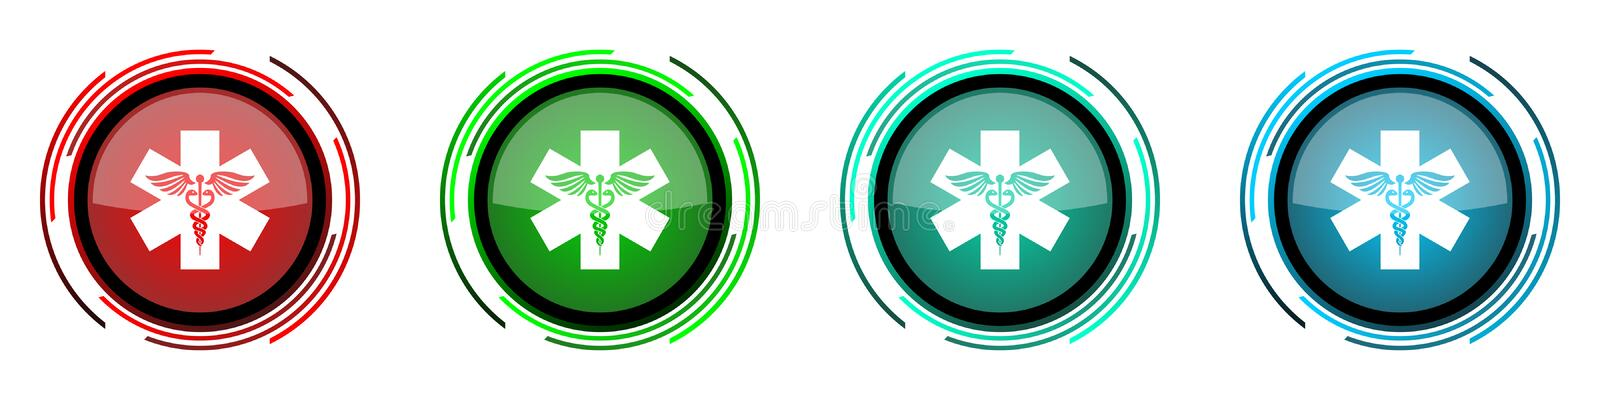 Emergency round glossy vector icons, set of buttons for webdesign, internet and mobile phone applications in four colors options. Isolated on white royalty free illustration